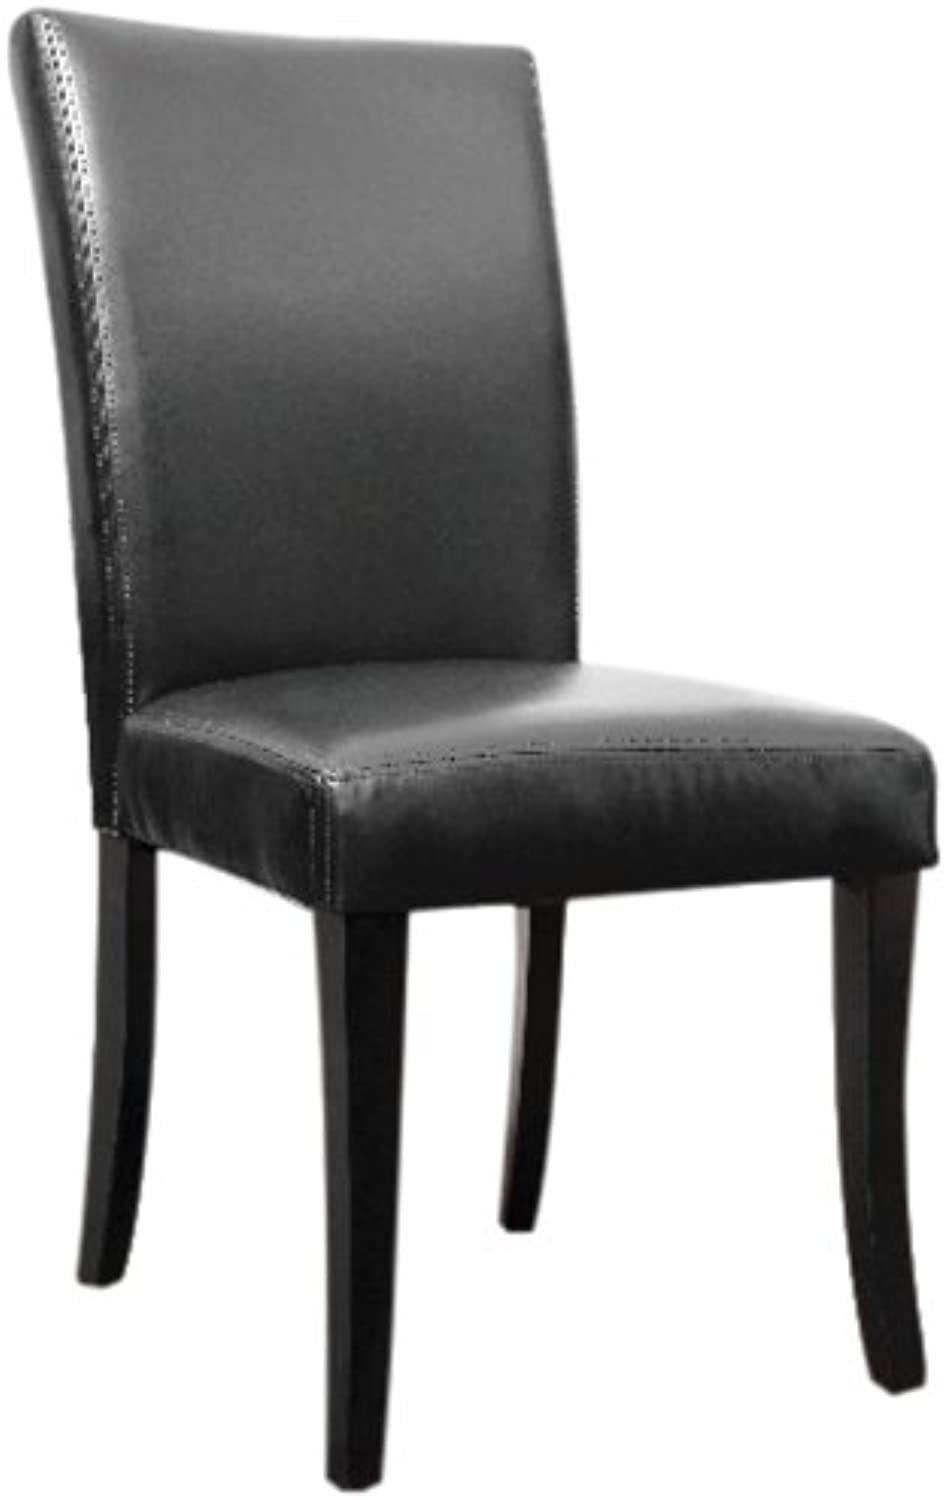 The FHE Group Bonded Leather Parsons Chair, 18 by 38.5 by 17.5-Inch, Black